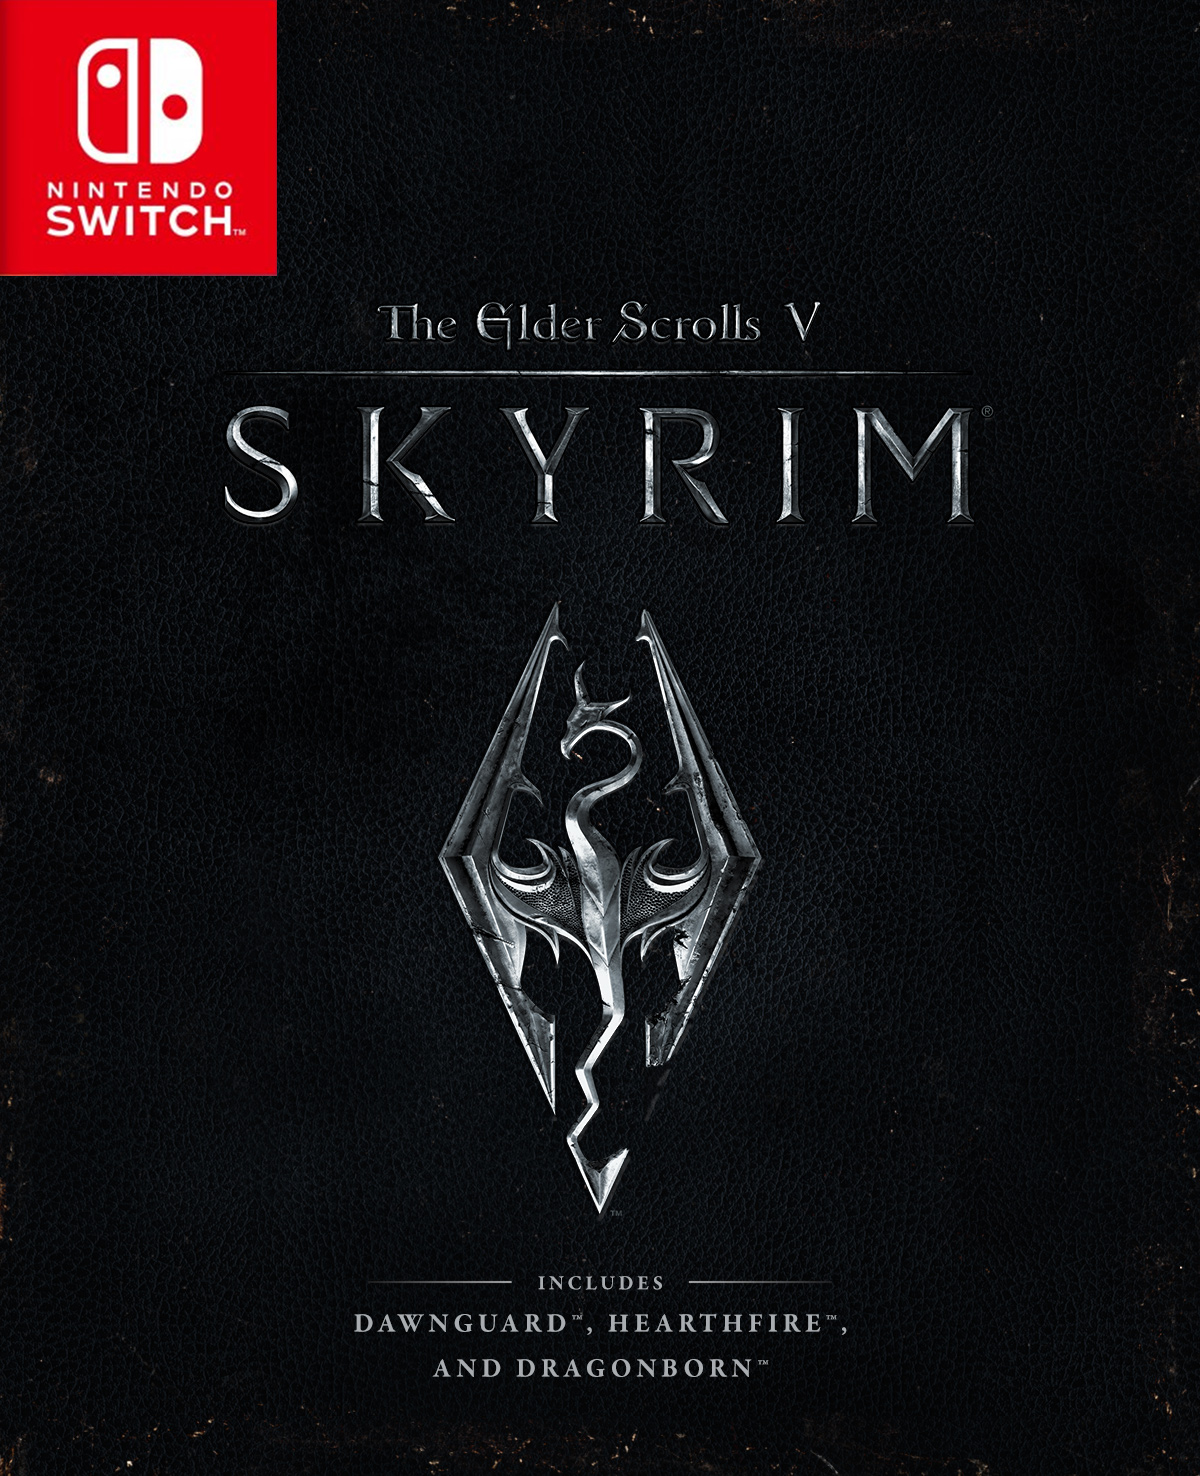 Nintendo Switch版『The Elder Scrolls V:Skyrim』のパッケージが公開!